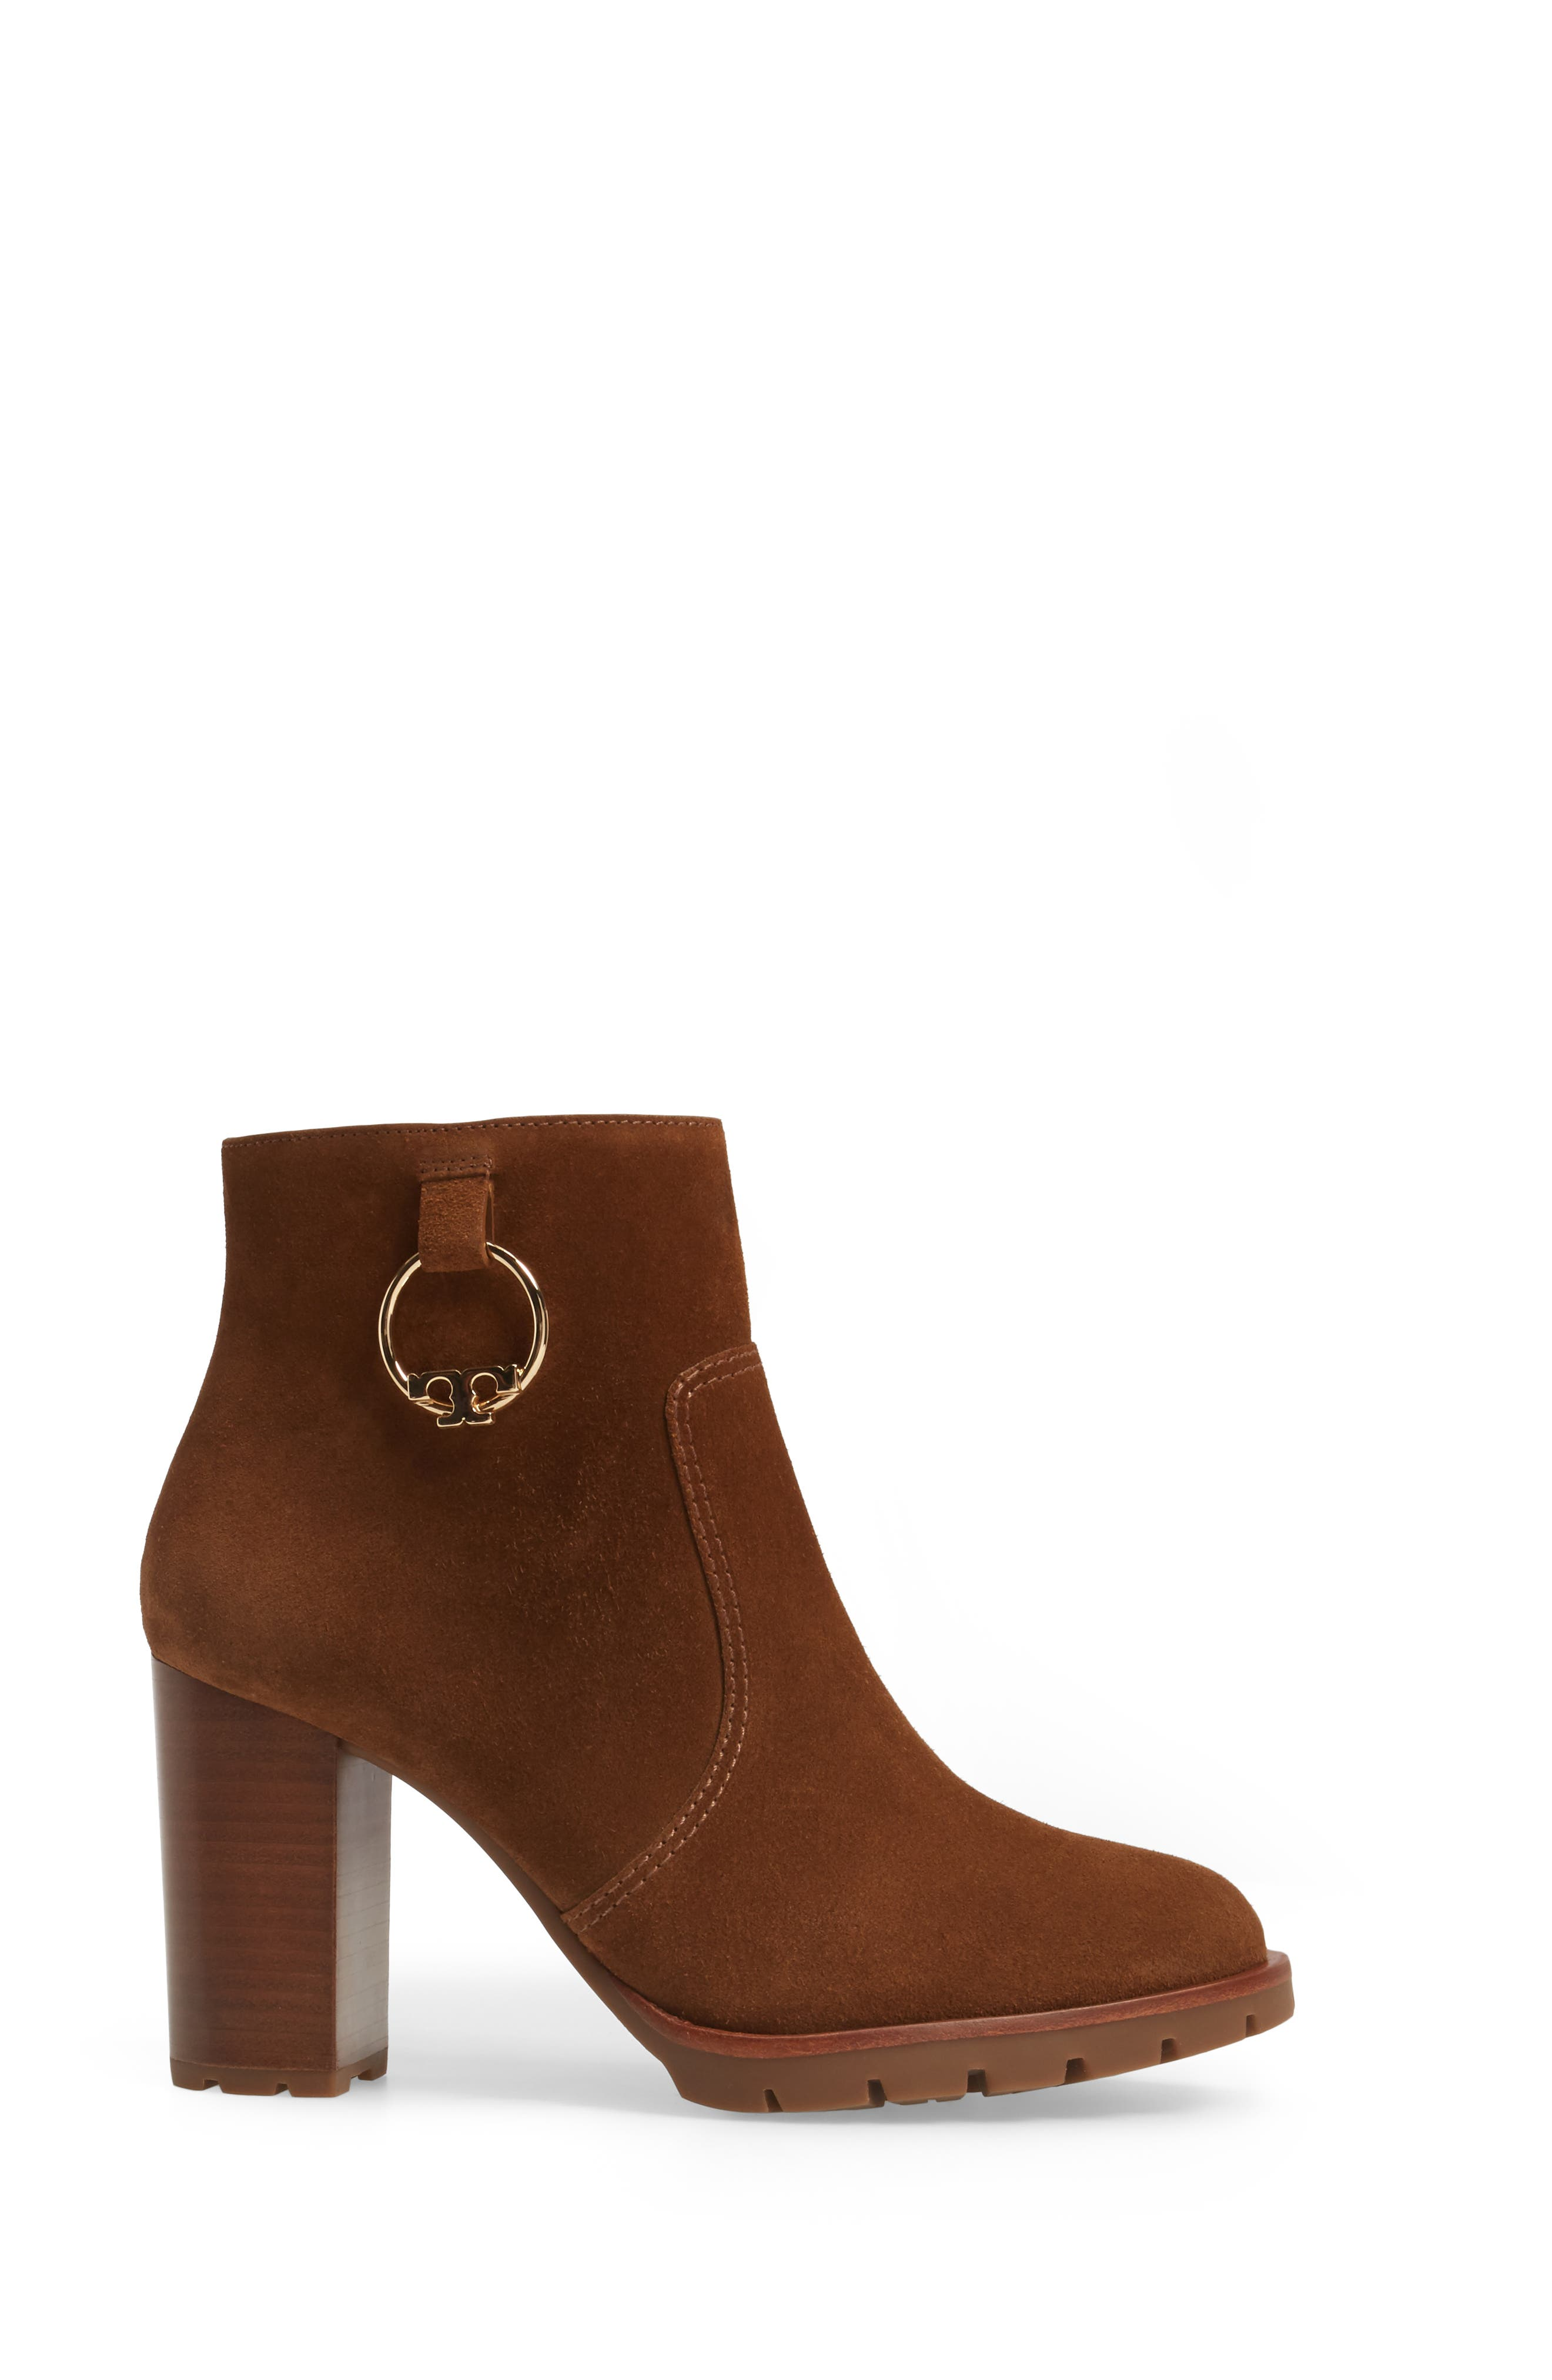 Sofia Lugged Logo Charm Bootie,                             Alternate thumbnail 4, color,                             Festival Brown